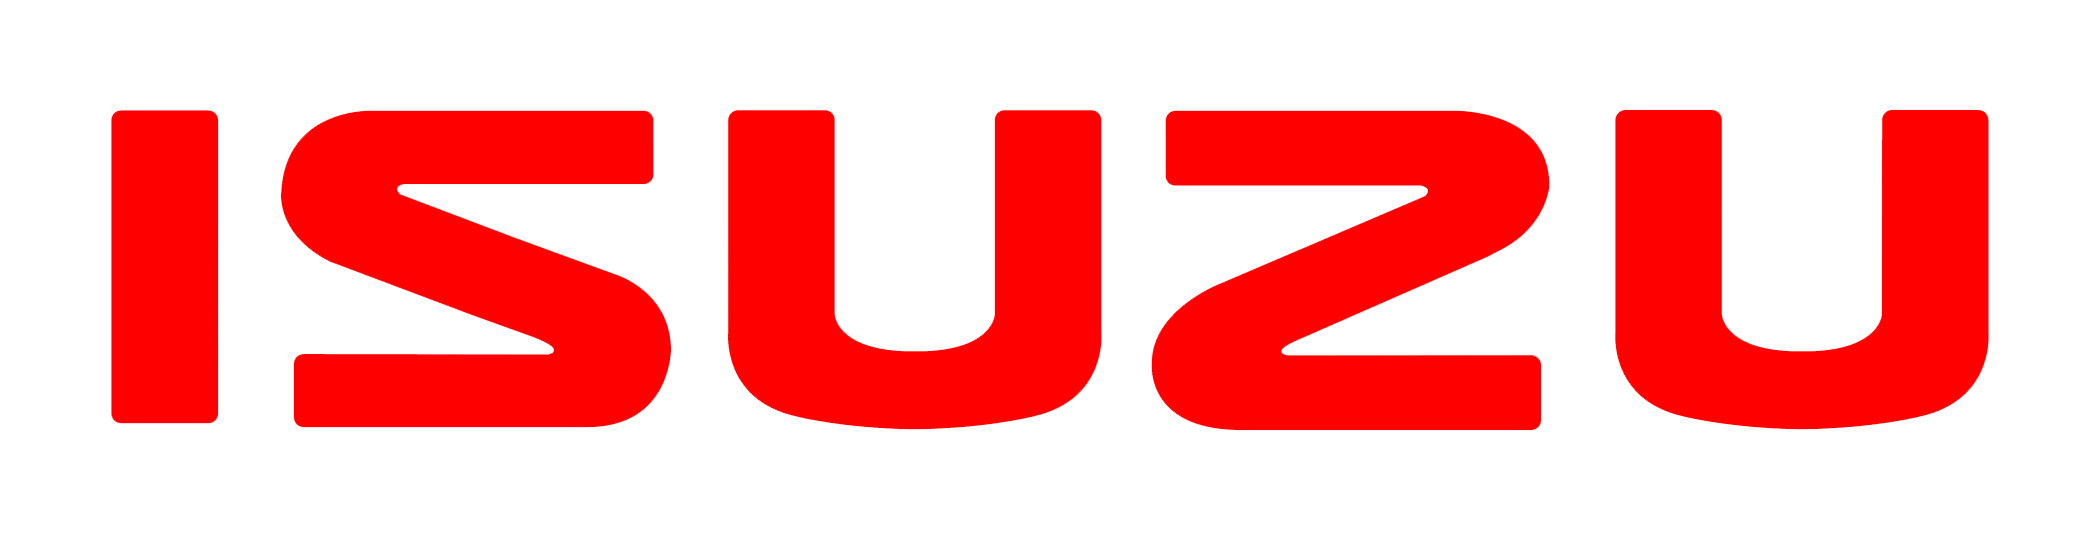 Image result for logo isuzu